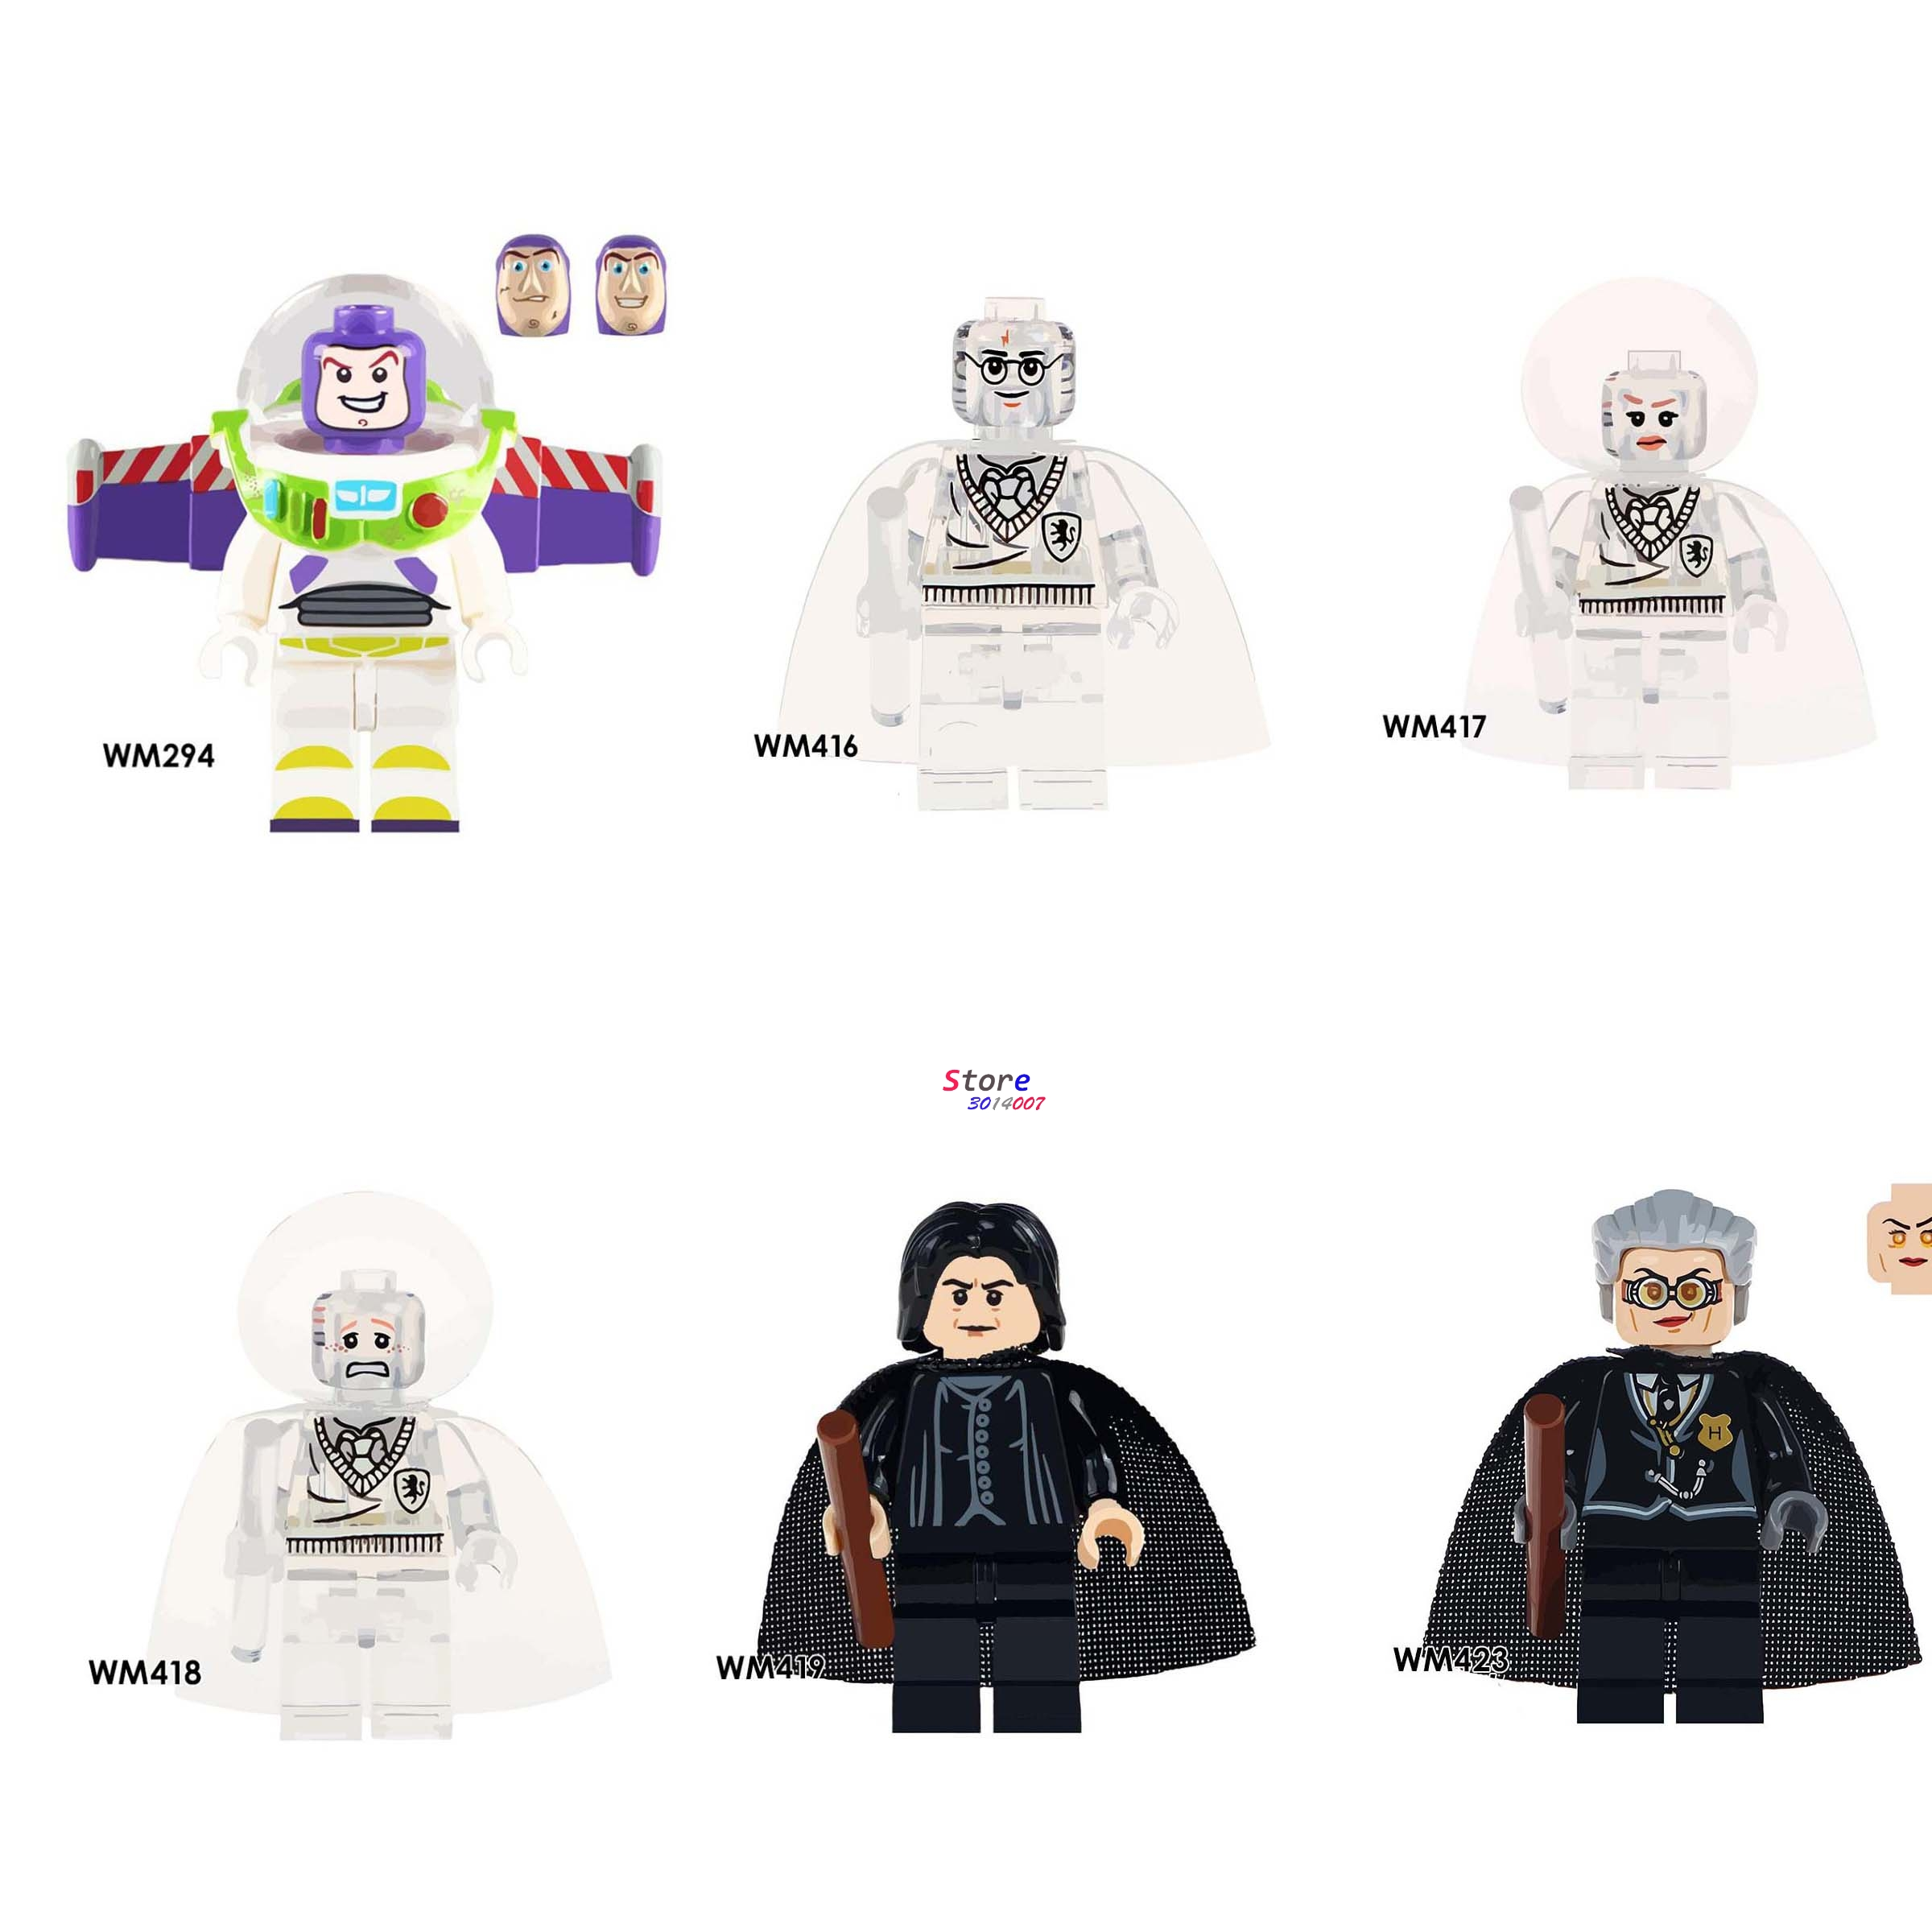 Single Story Buzz Lightyear Figures Harry Potter Crystal Ron Weasley Severus Snape Madame Hooch building block toys for children harry potter ron weasley gregory goyle lucius malfoy argus narcissa professor sprout figures bricks toys for children kl9002